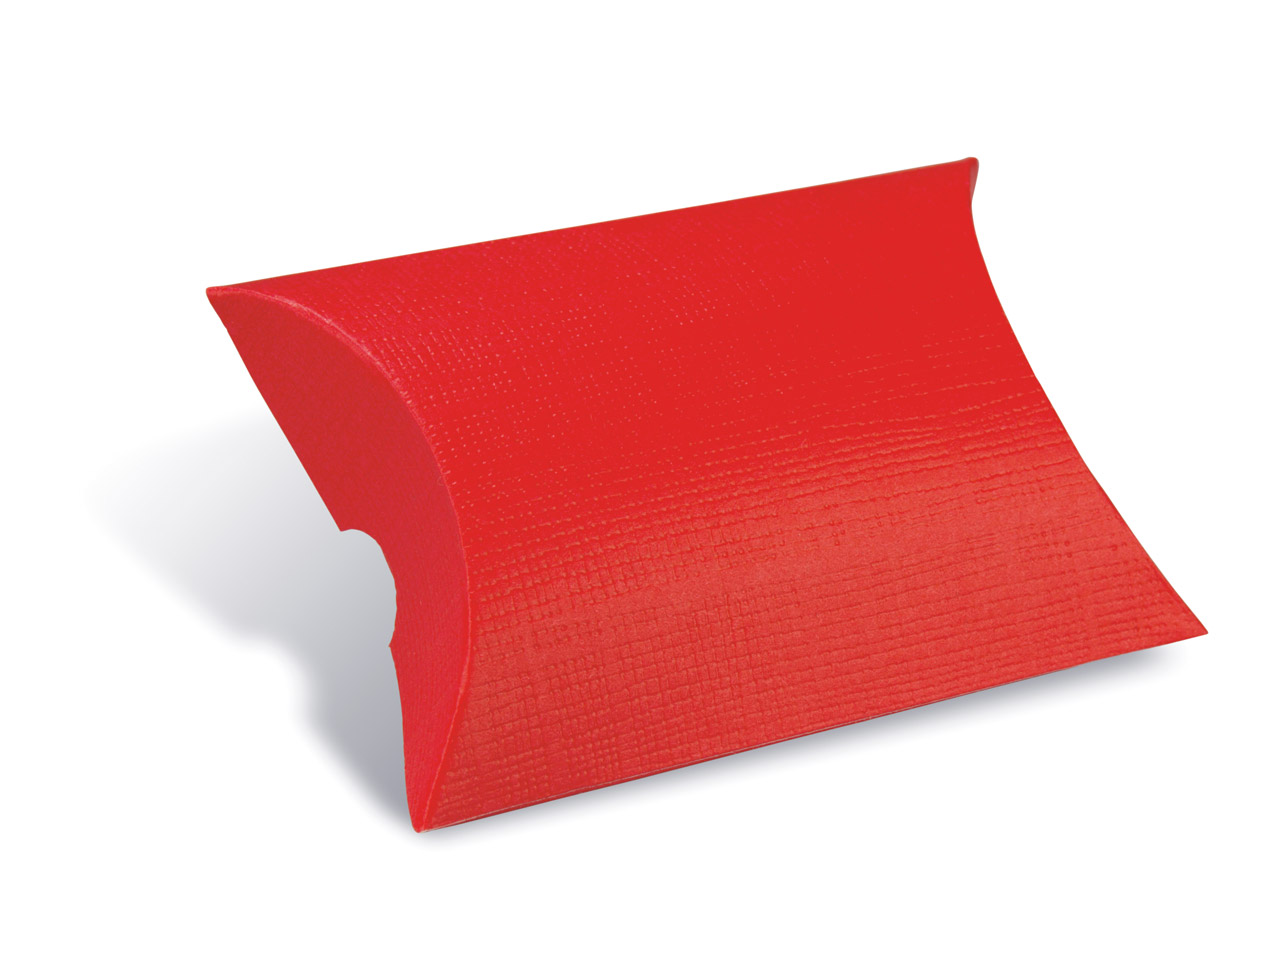 Emballage Berlingot rouge, 70 x 70 x 25 mm, par lot de 10